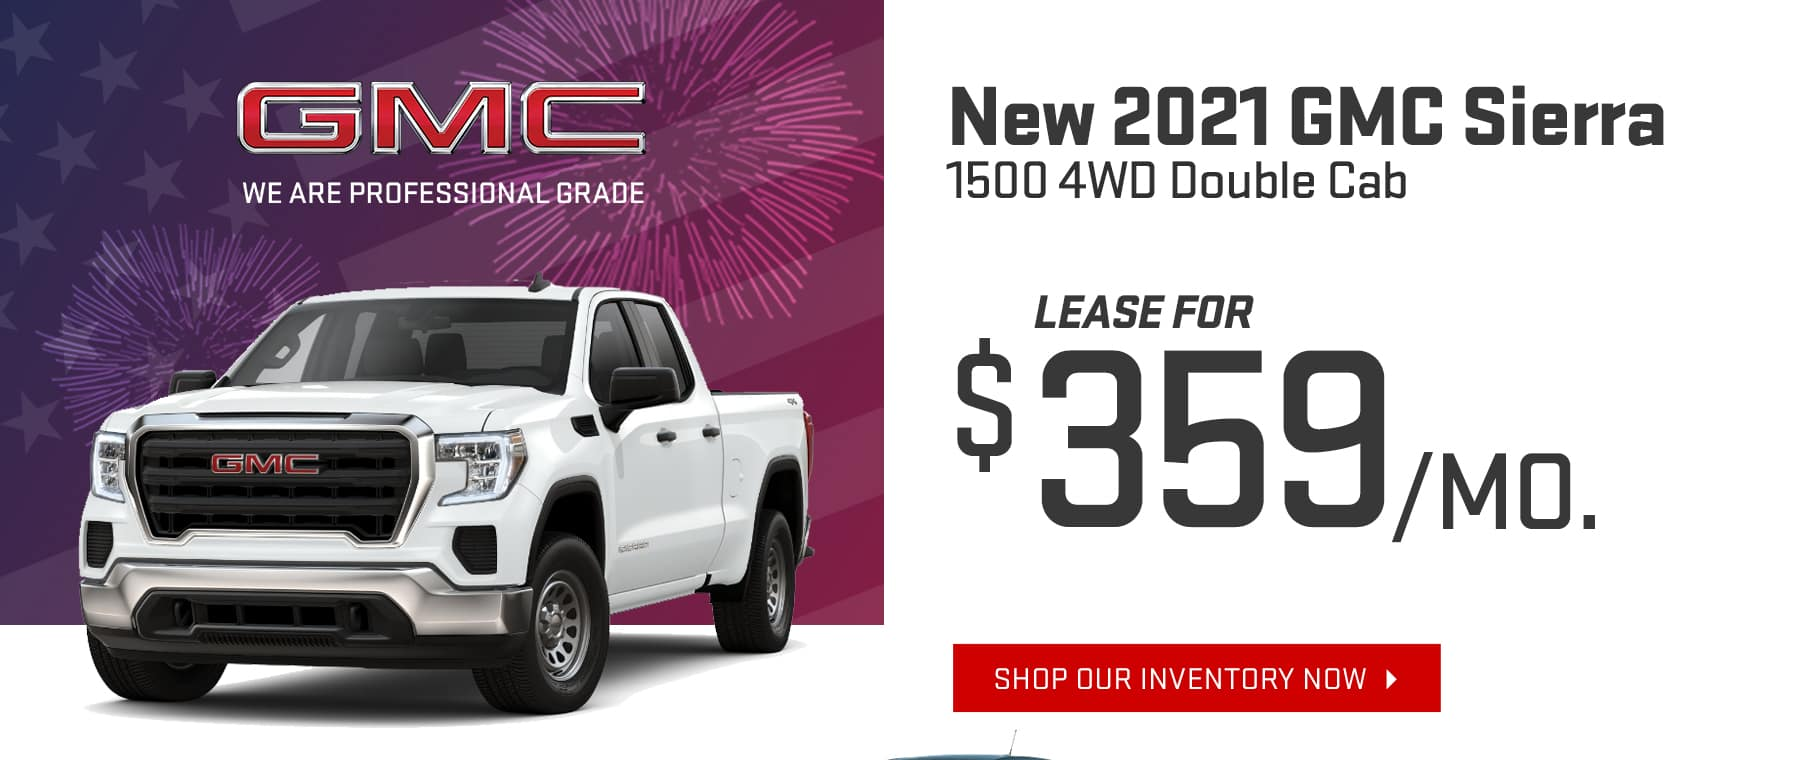 HURD_1800x760_New 2021 GMC Sierra_1500 4WD Double Cab_0221